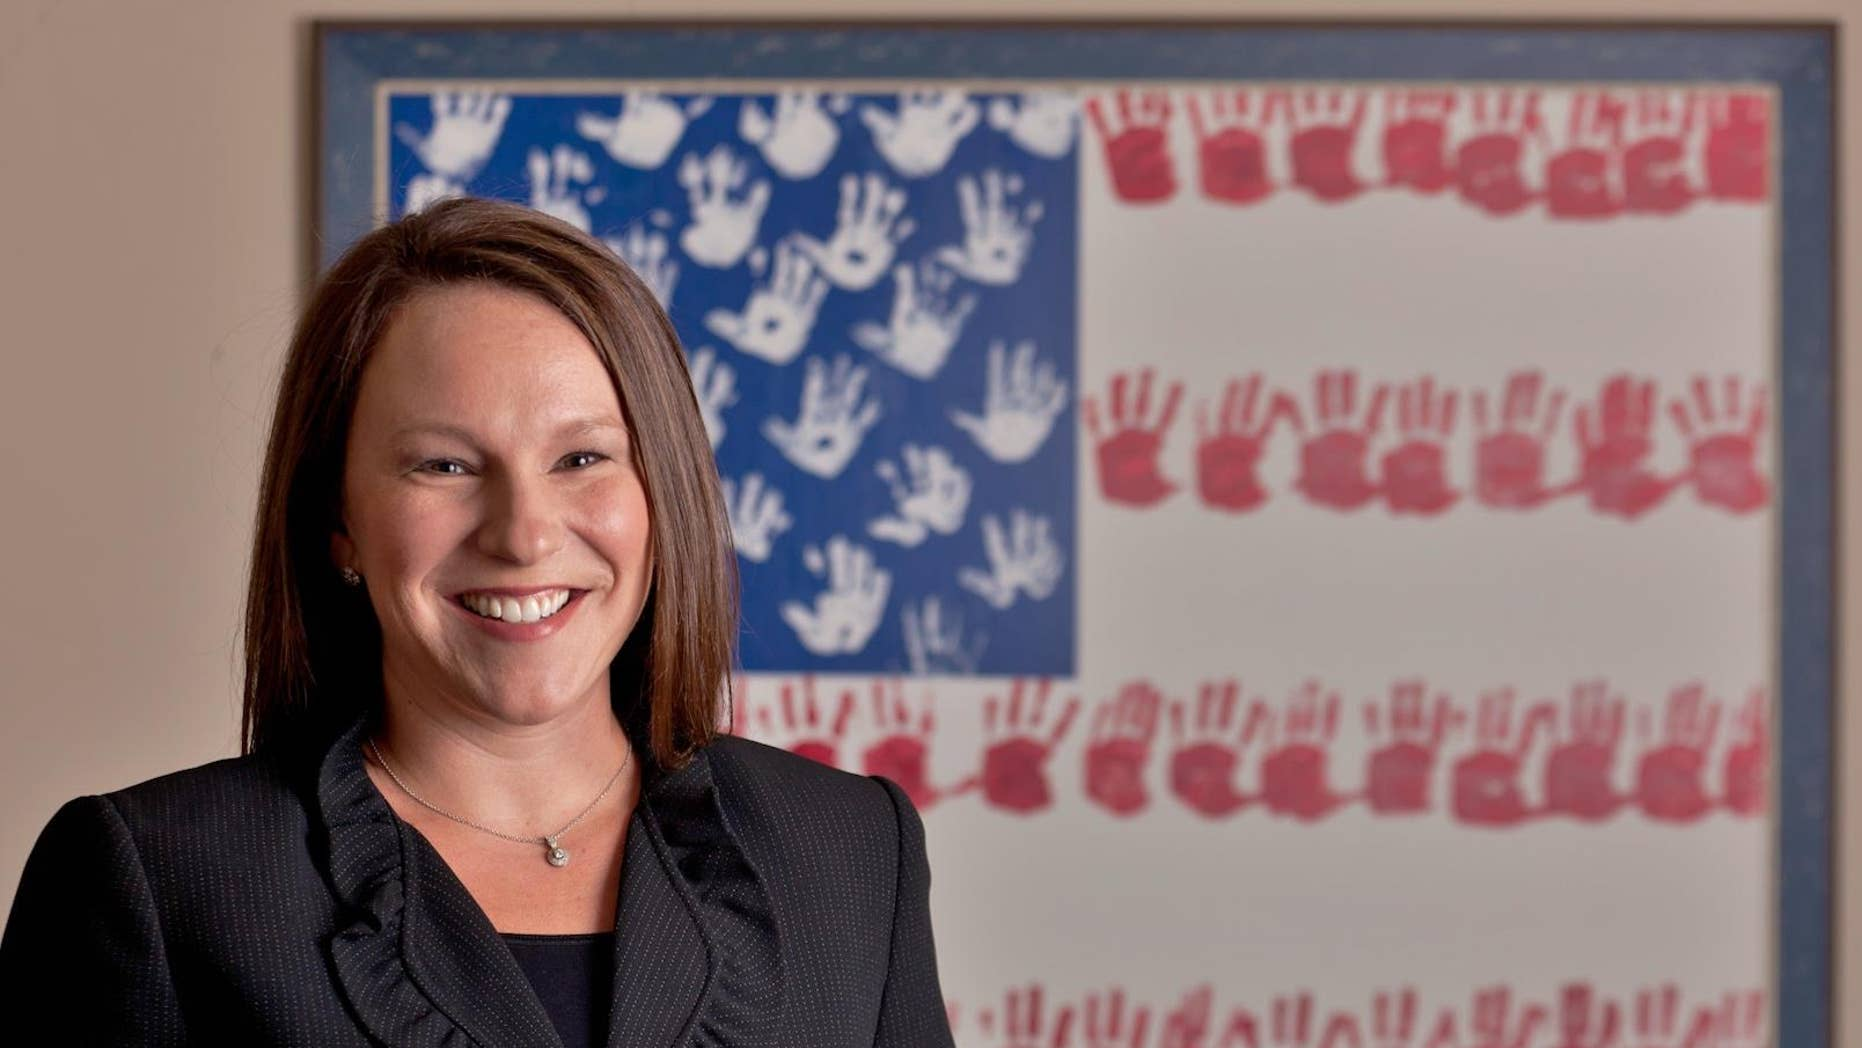 Republican Congresswoman Martha Roby's troubles stem from her decision to withdraw support from Donald Trump during the 2016 campaign after the release of an old Access Hollywood tape in which Trump talks about groping women.